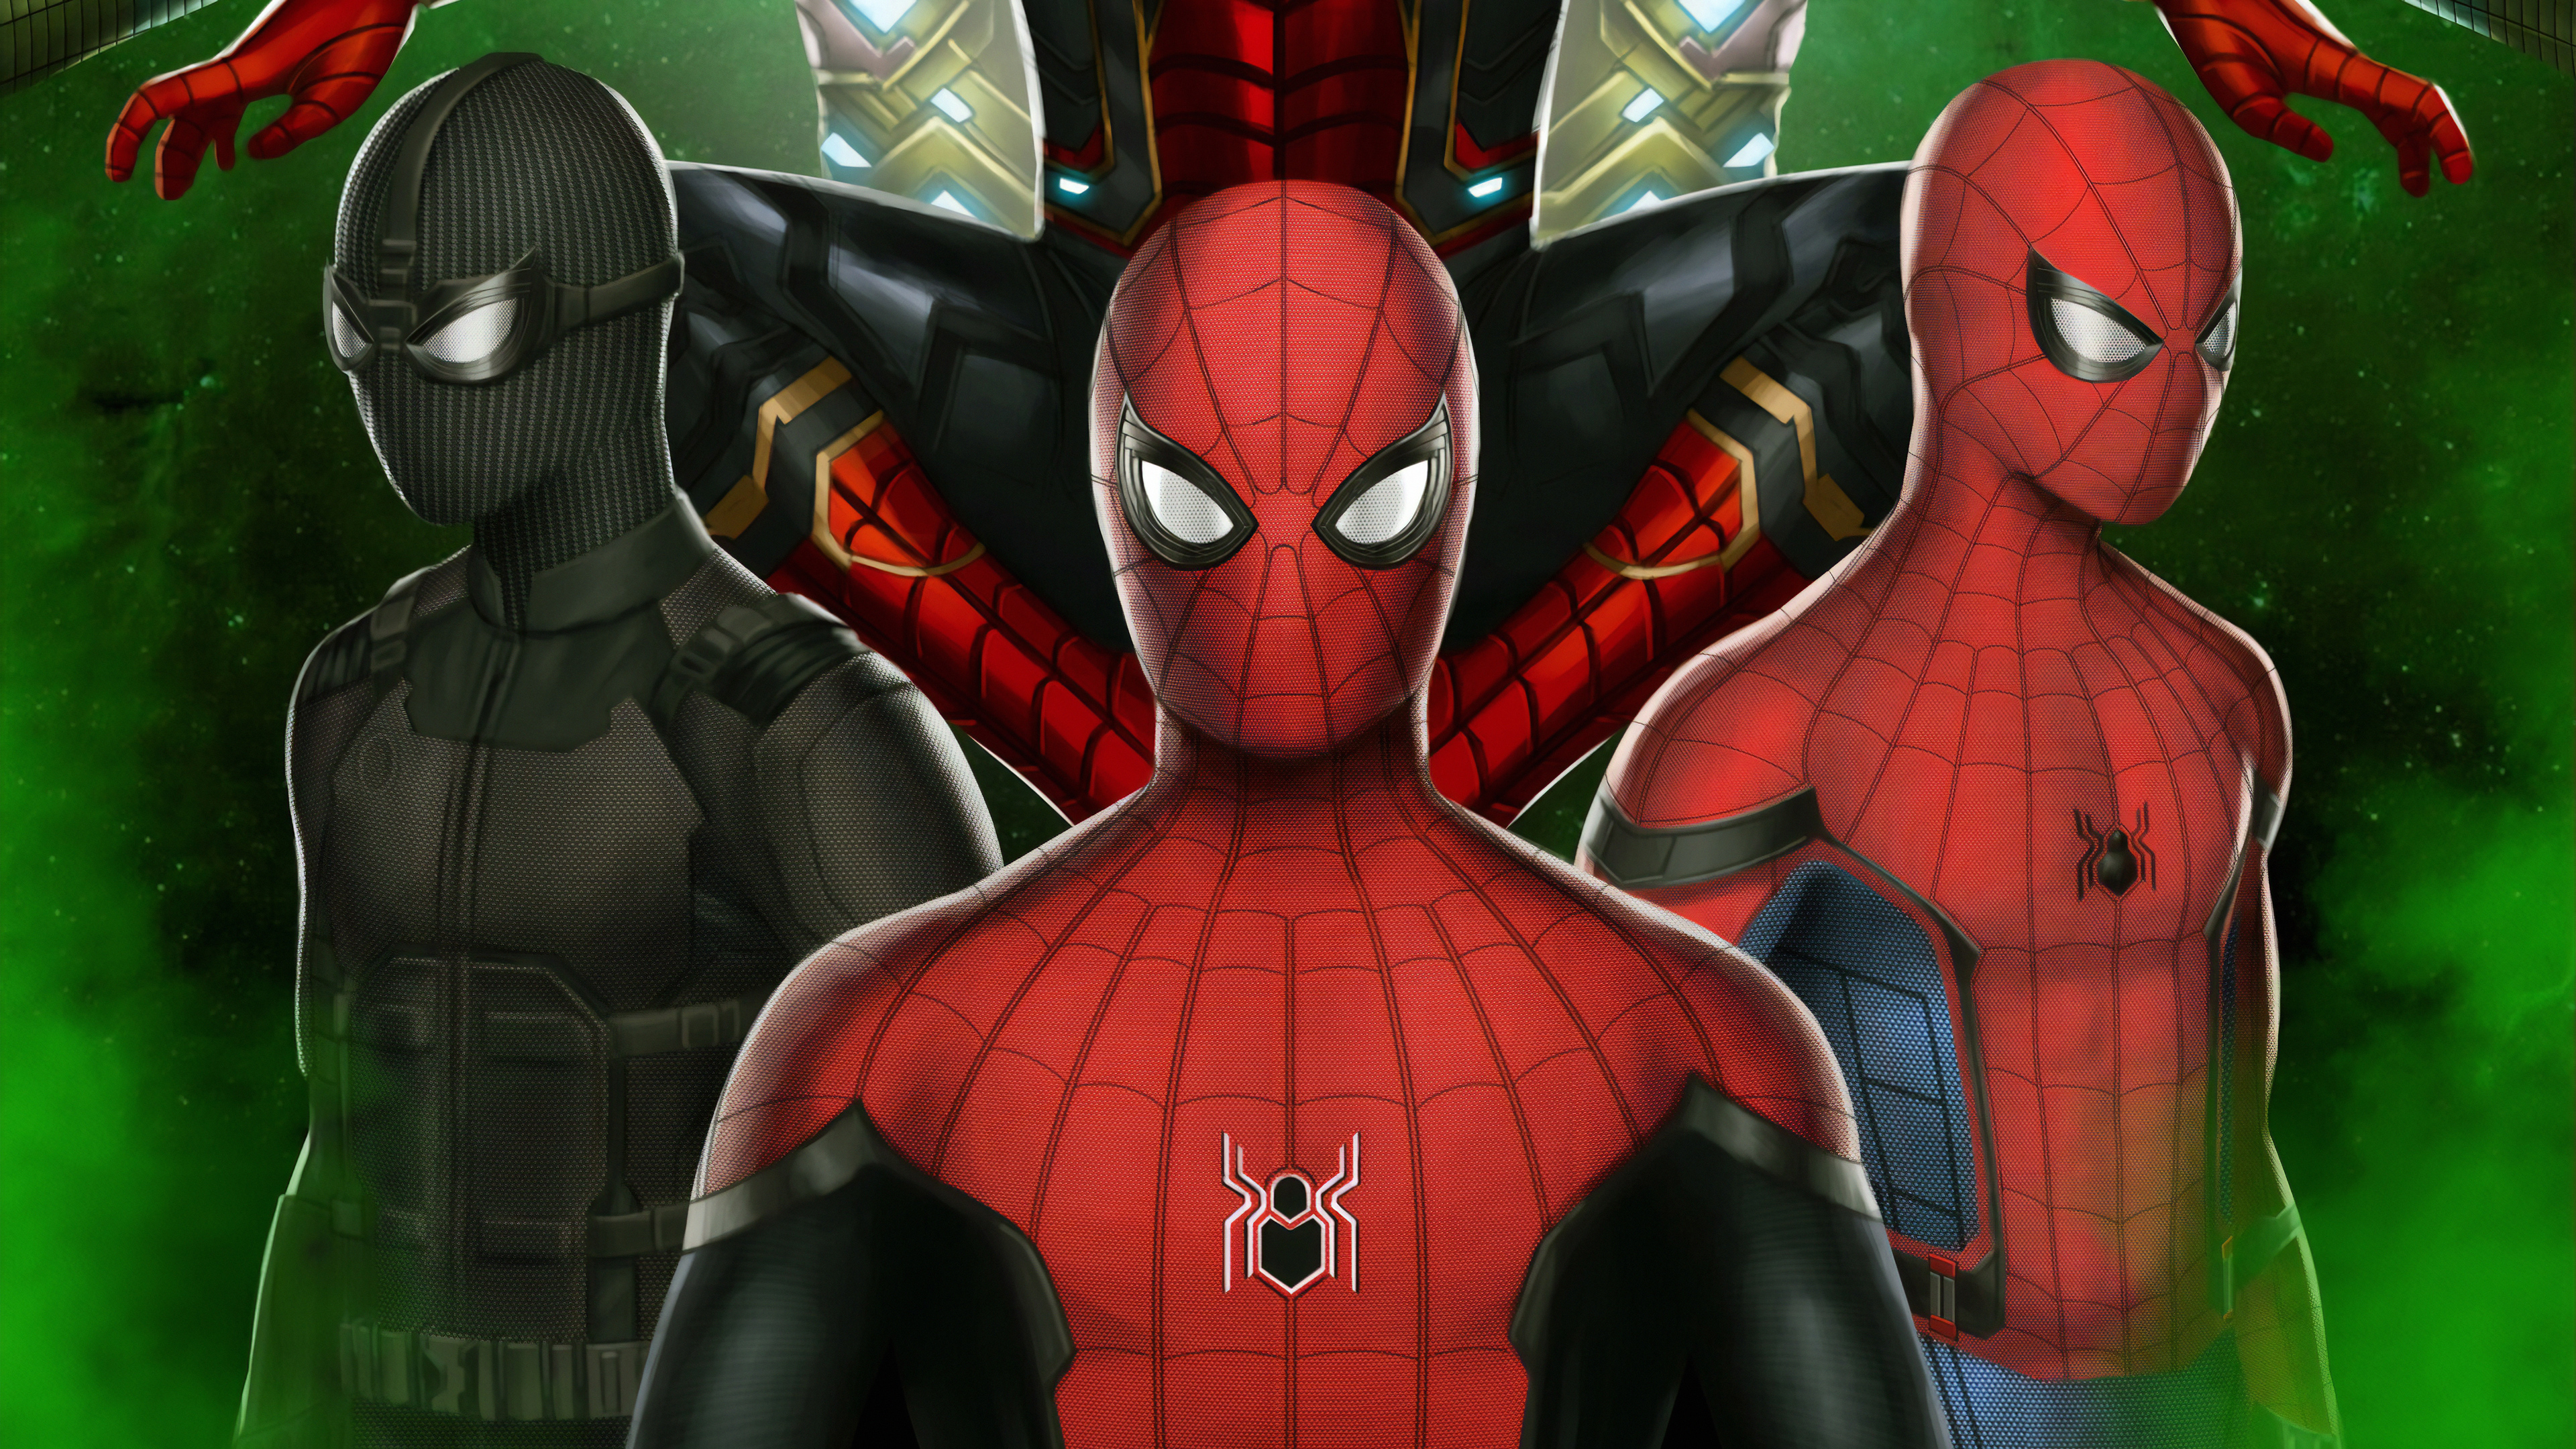 Spiderman Far From Home Suits , HD Wallpaper & Backgrounds